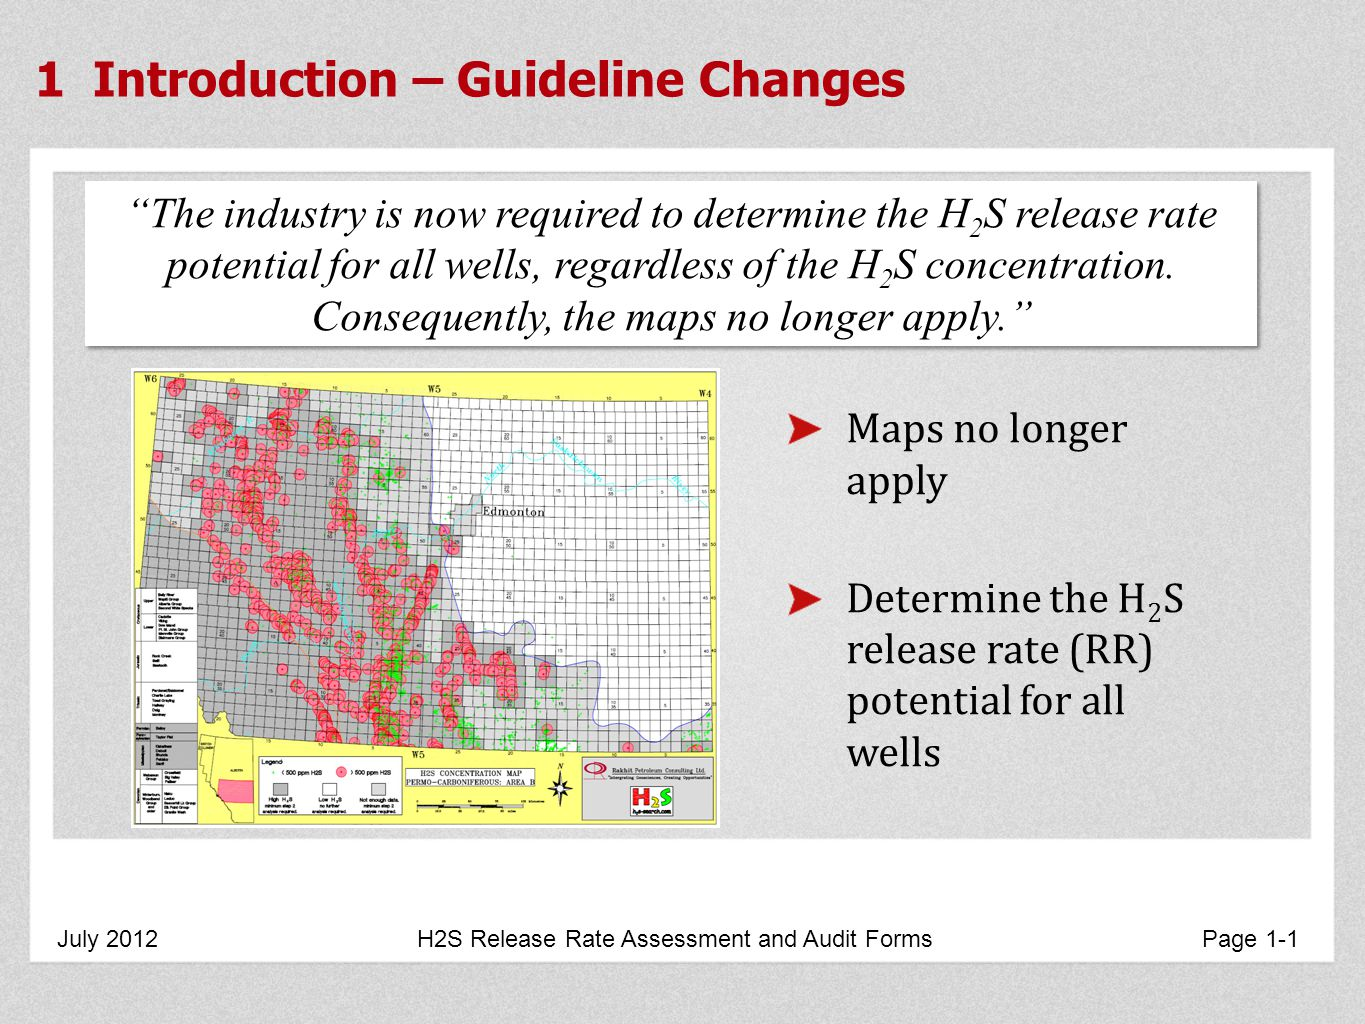 1 Introduction – Guideline Changes July 2012 H2S Release Rate Assessment and Audit Forms Page 1-1 Maps no longer apply Determine the H 2 S release rate (RR) potential for all wells The industry is now required to determine the H 2 S release rate potential for all wells, regardless of the H 2 S concentration.